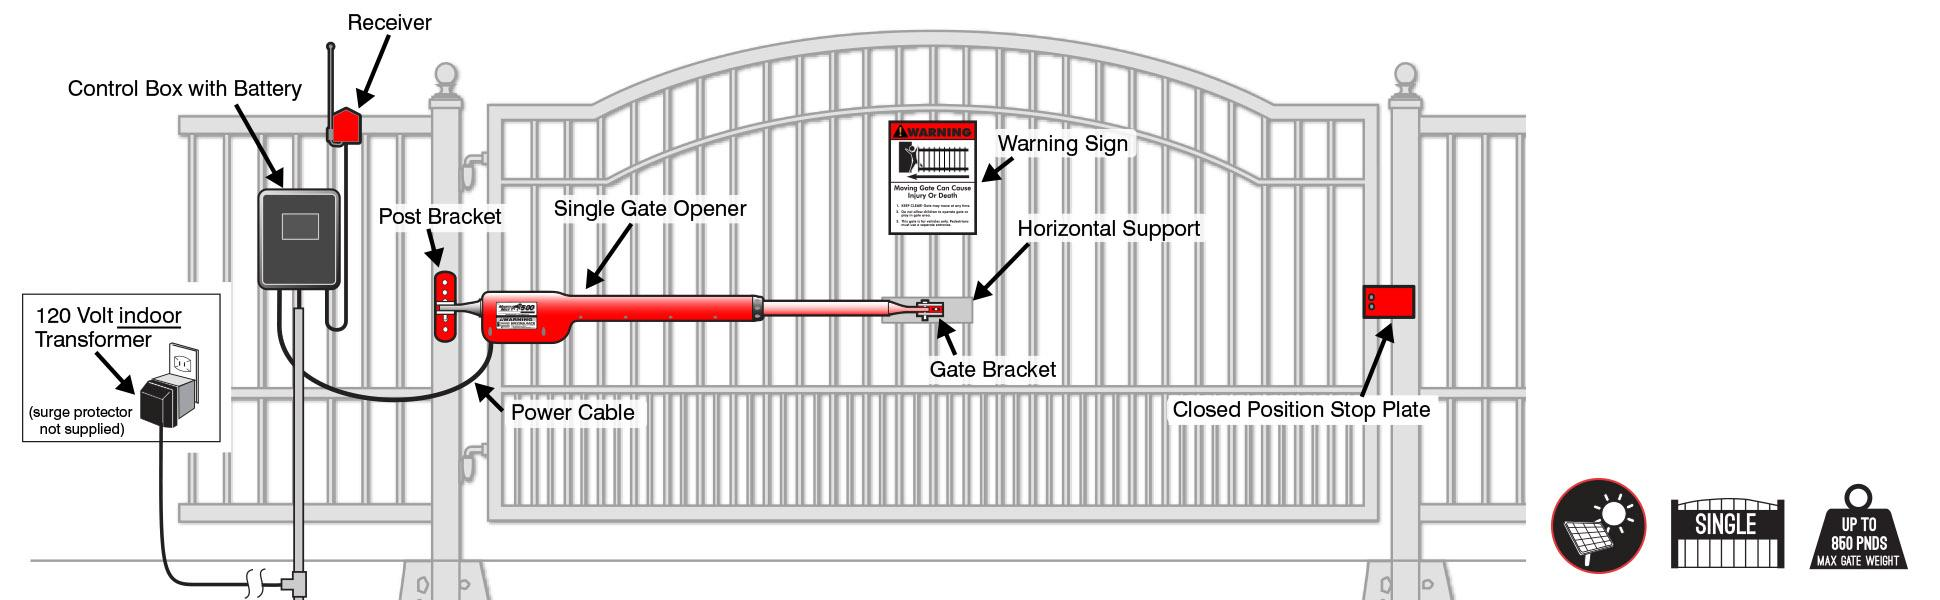 mighty mule automatic gate opener for heavy duty single swing gates for 18